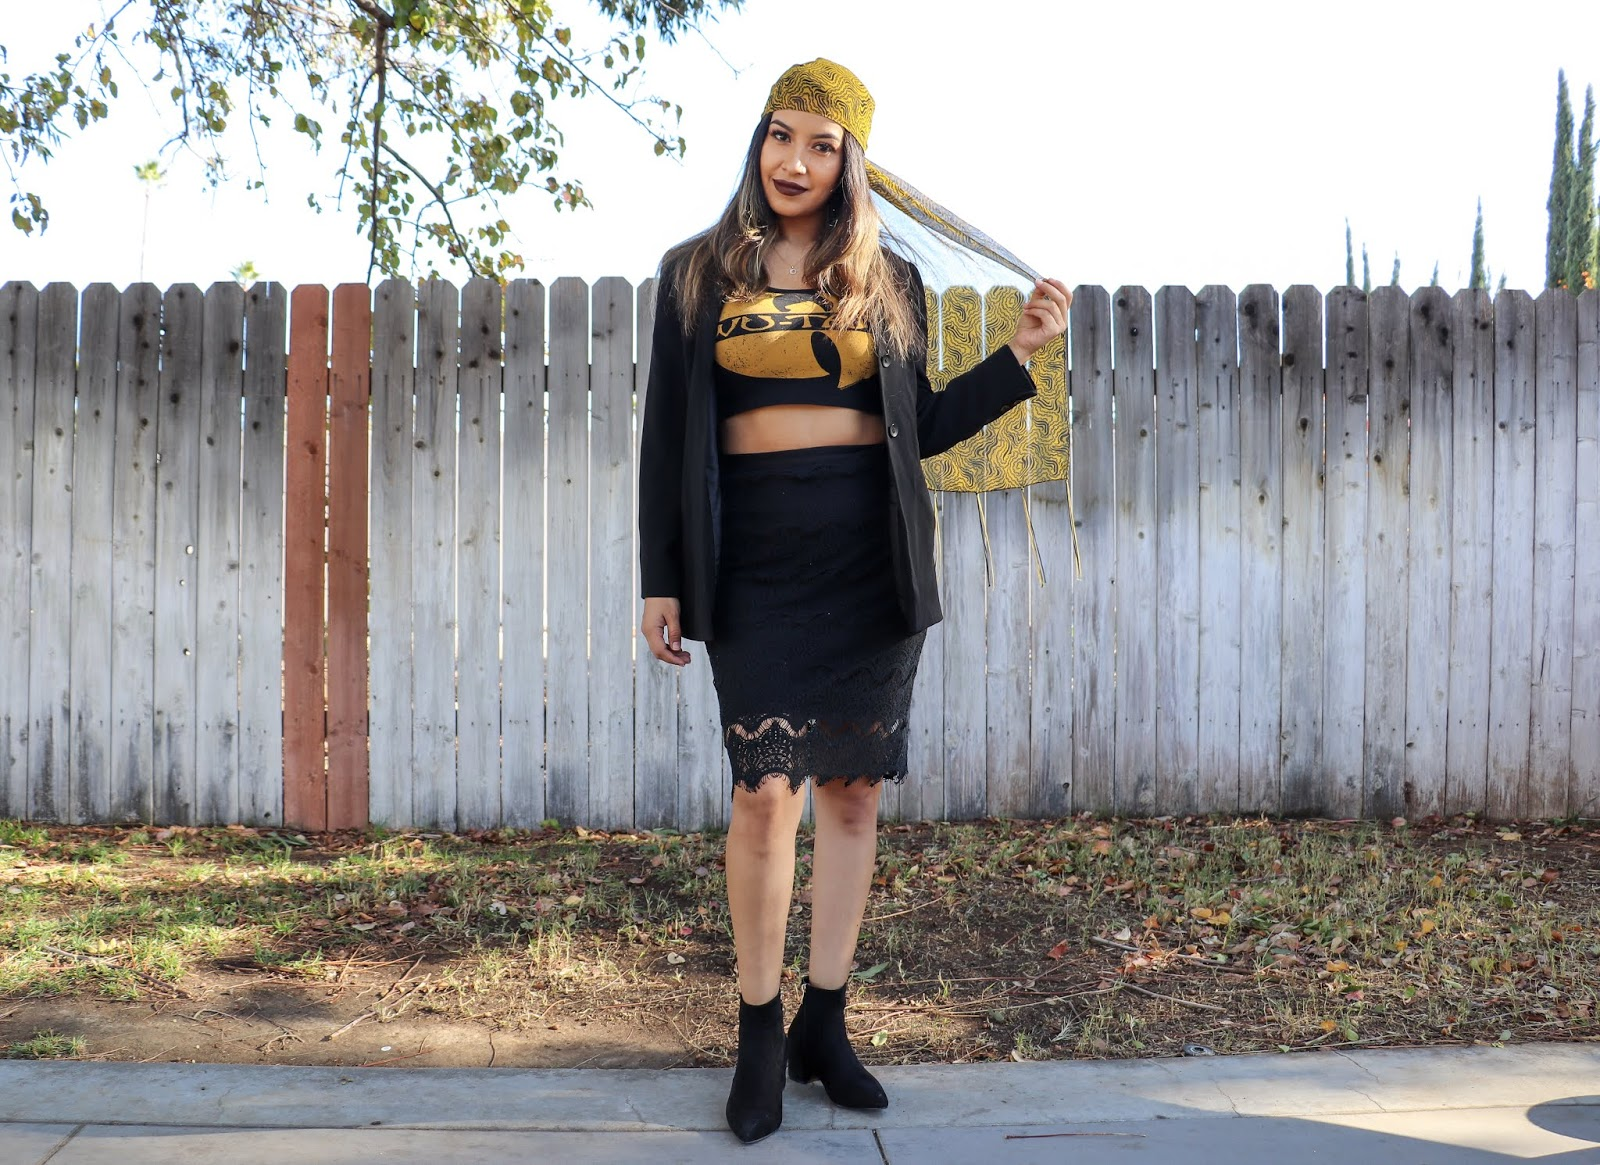 WuTang_Clan_Crop_top_Ootd_Lace_Skirt_Black_BLazer_Head_Scarf